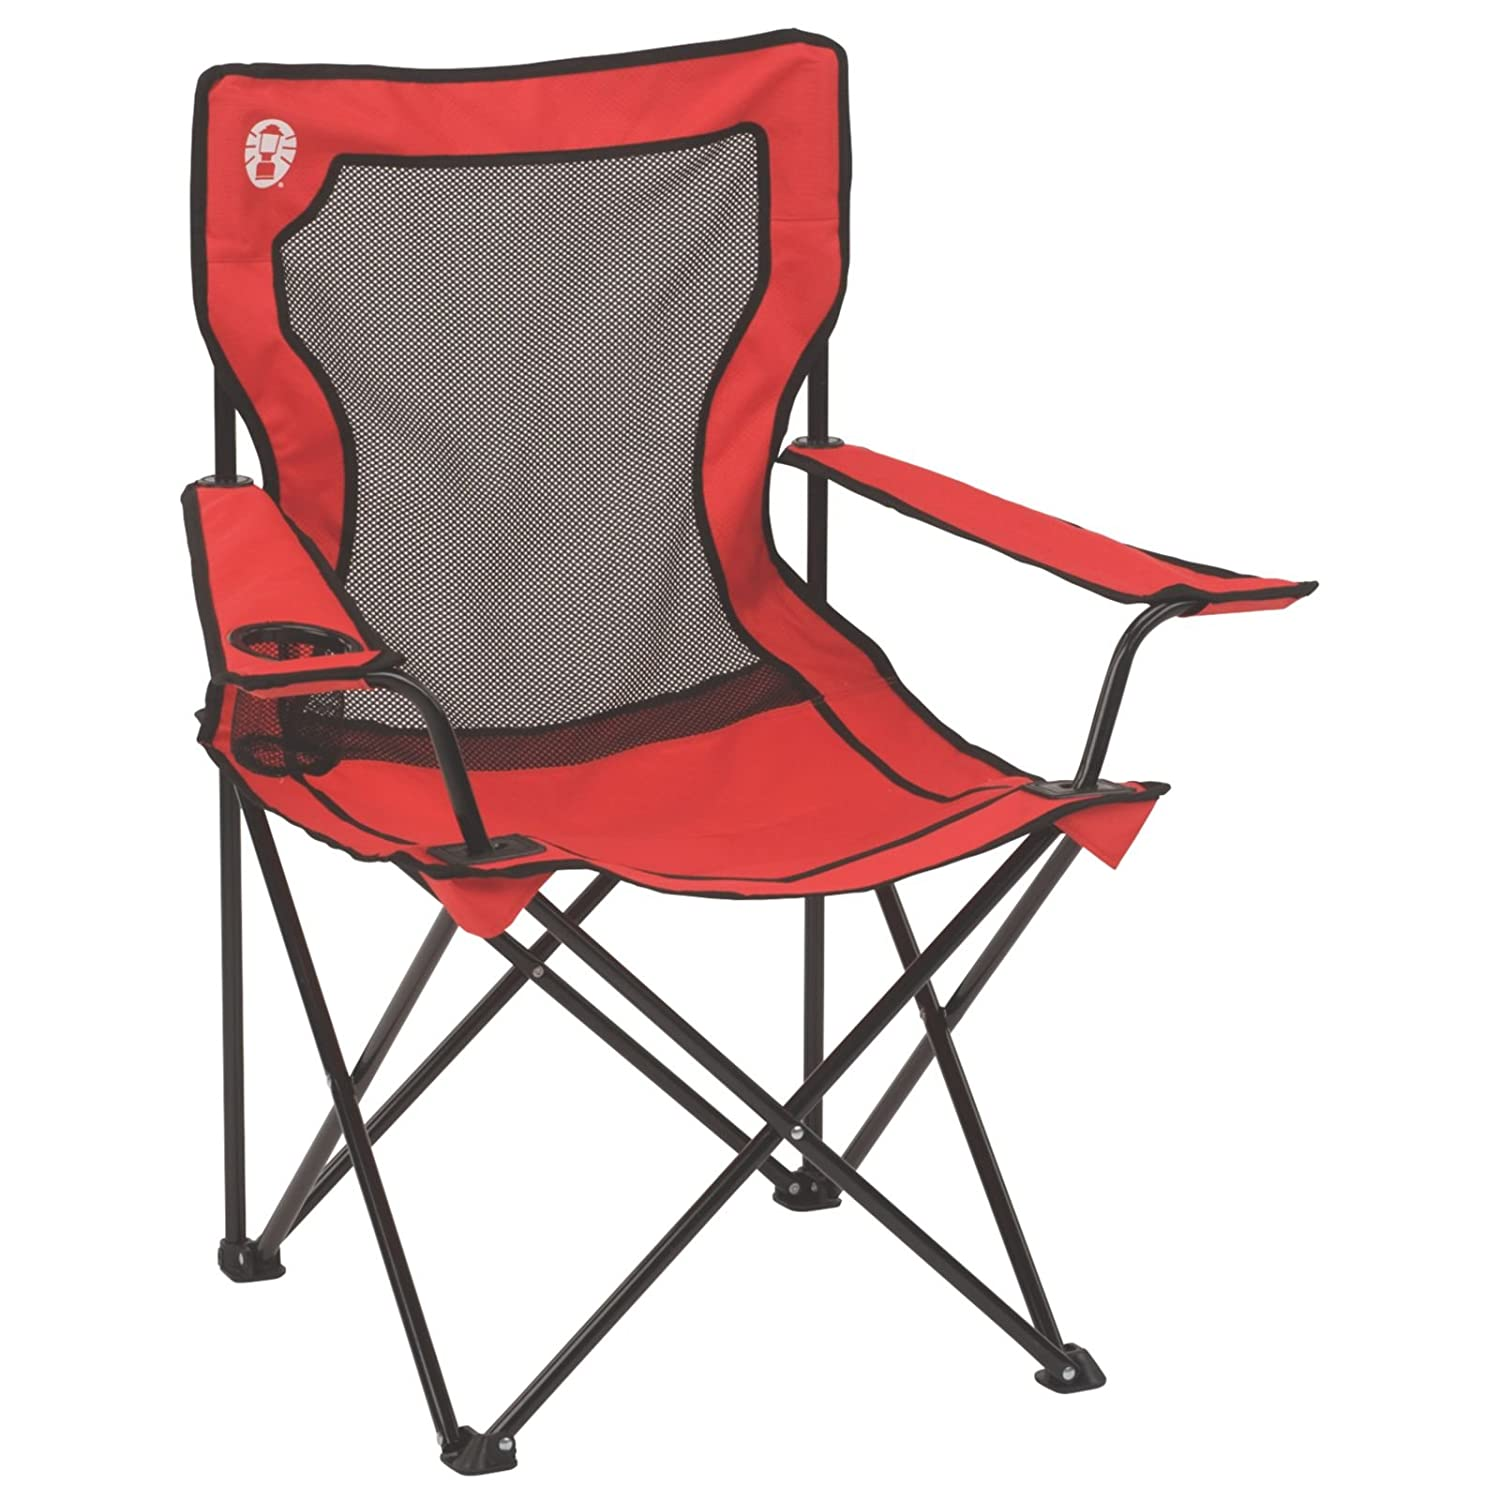 Attractive Amazon.com : Coleman Broadband Mesh Quad Camping Chair : Camping Chairs :  Sports U0026 Outdoors